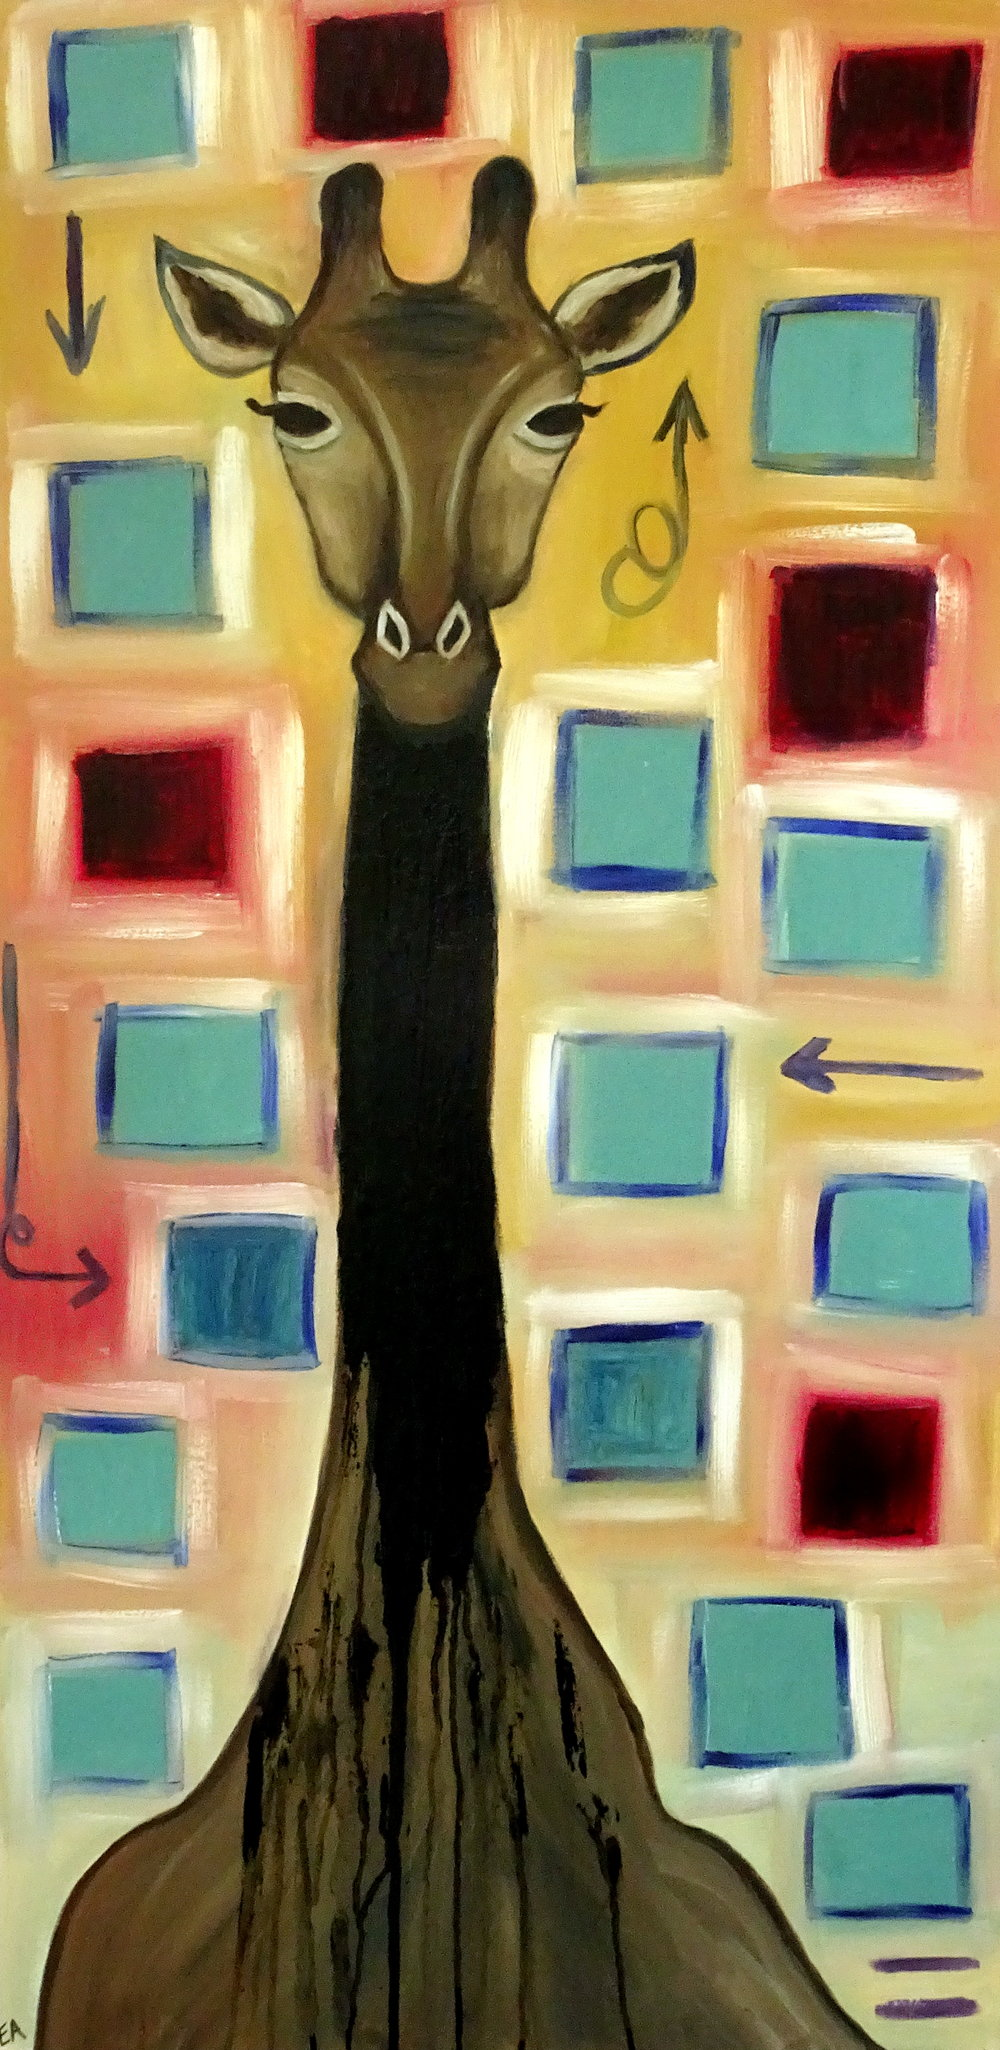 """""""God and Picasso I: Unfinished Giraffe"""" 24x48 Oil on Canvas gallery canvas. Original and prints available for purchase in online shop.."""